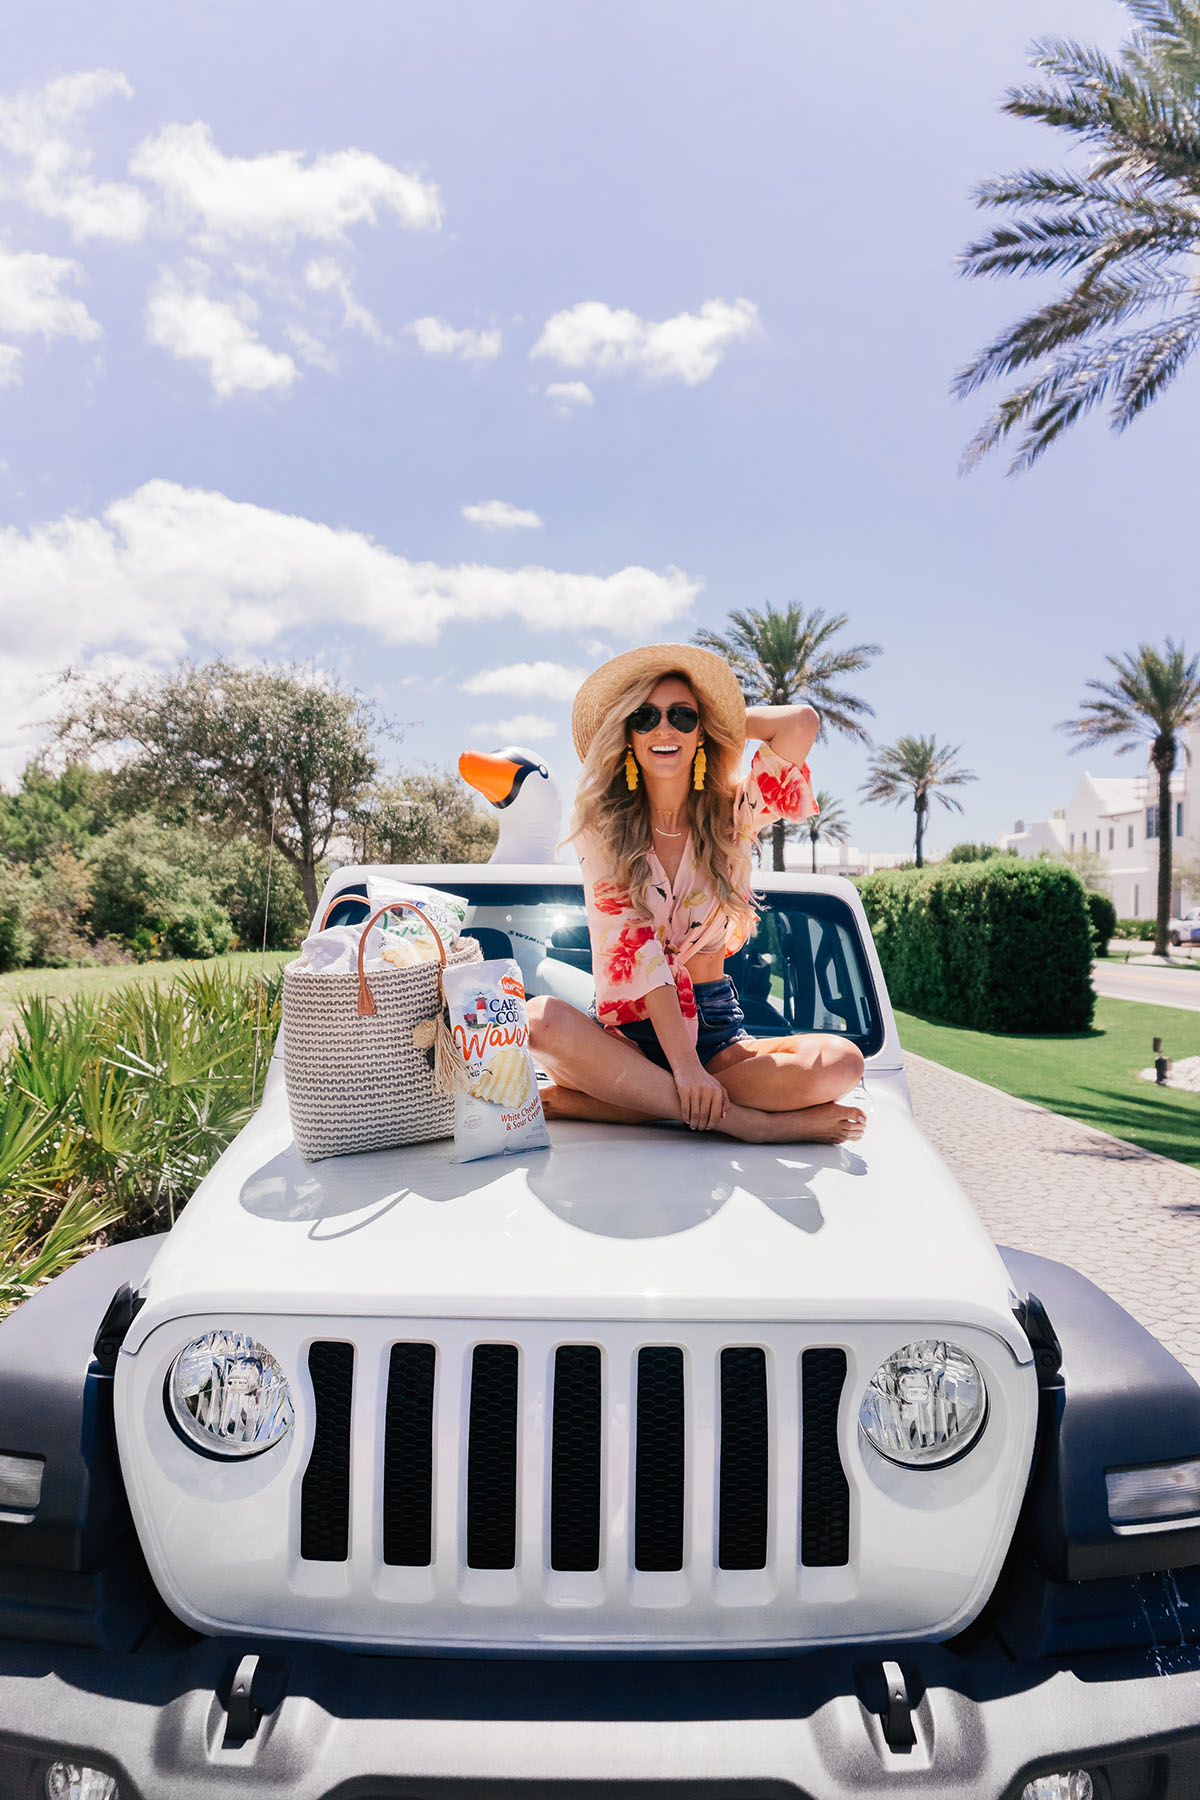 Summer Road Trip | Go-To Summer Snack | Cape Cod Chips